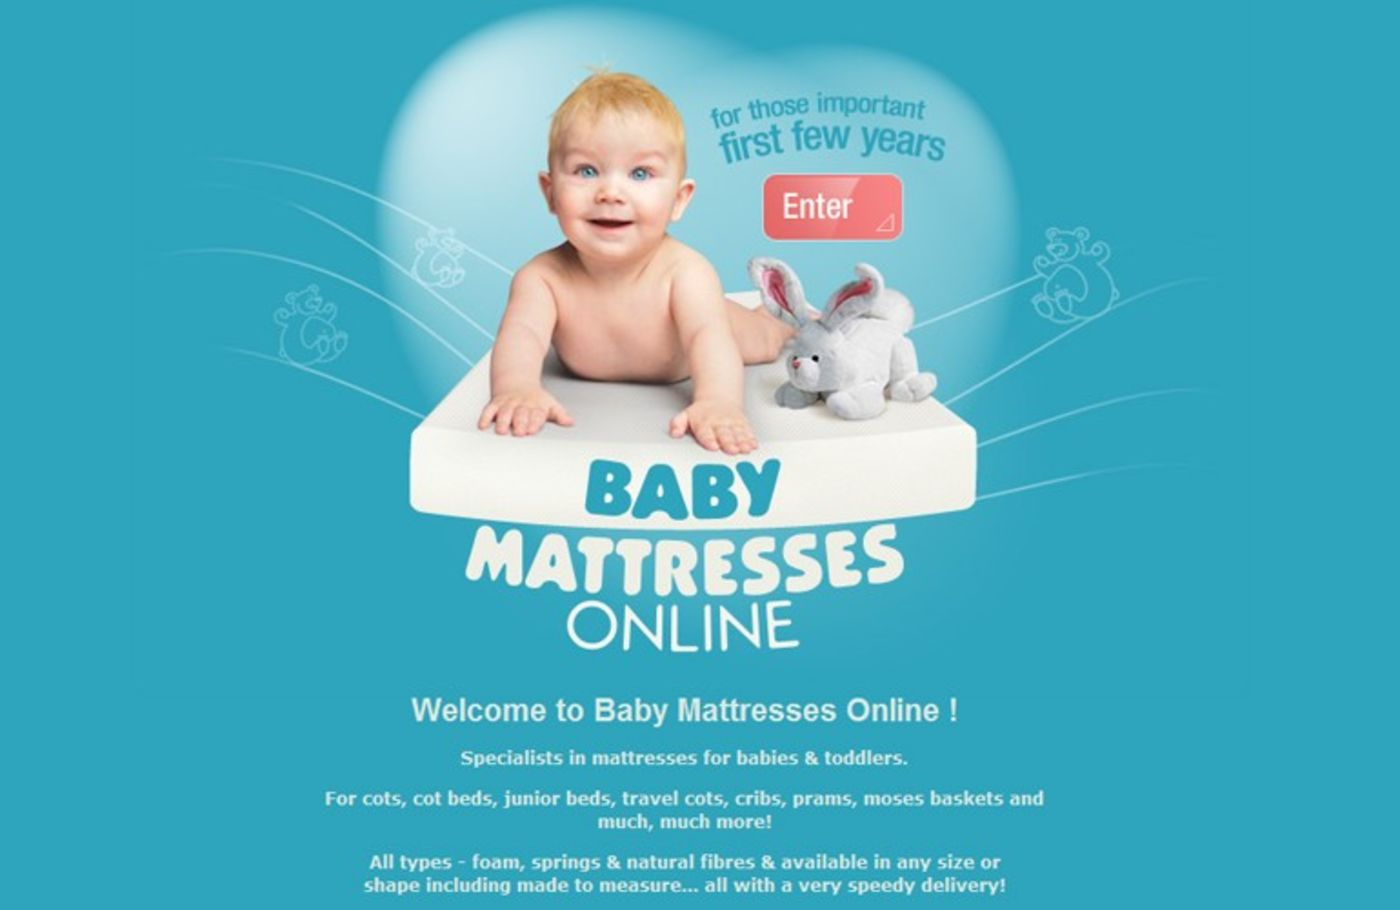 Baby Mattresses Online 2006 Welcome